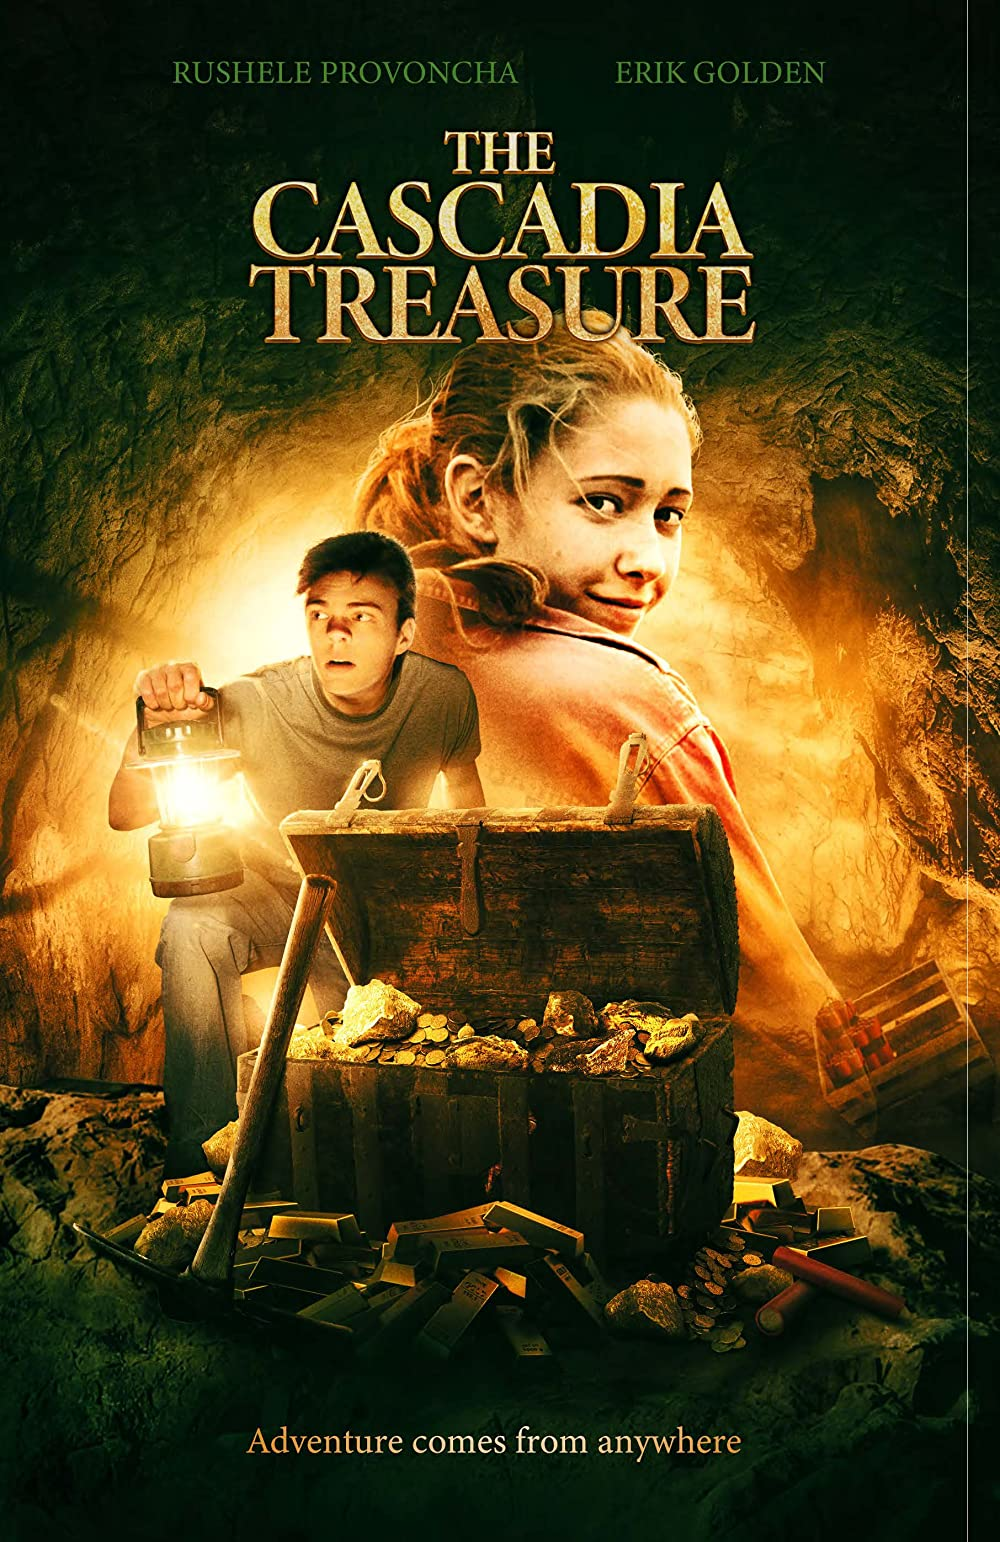 The Cascadia Treasure 2021 English 720p HDRip ESubs 800MB